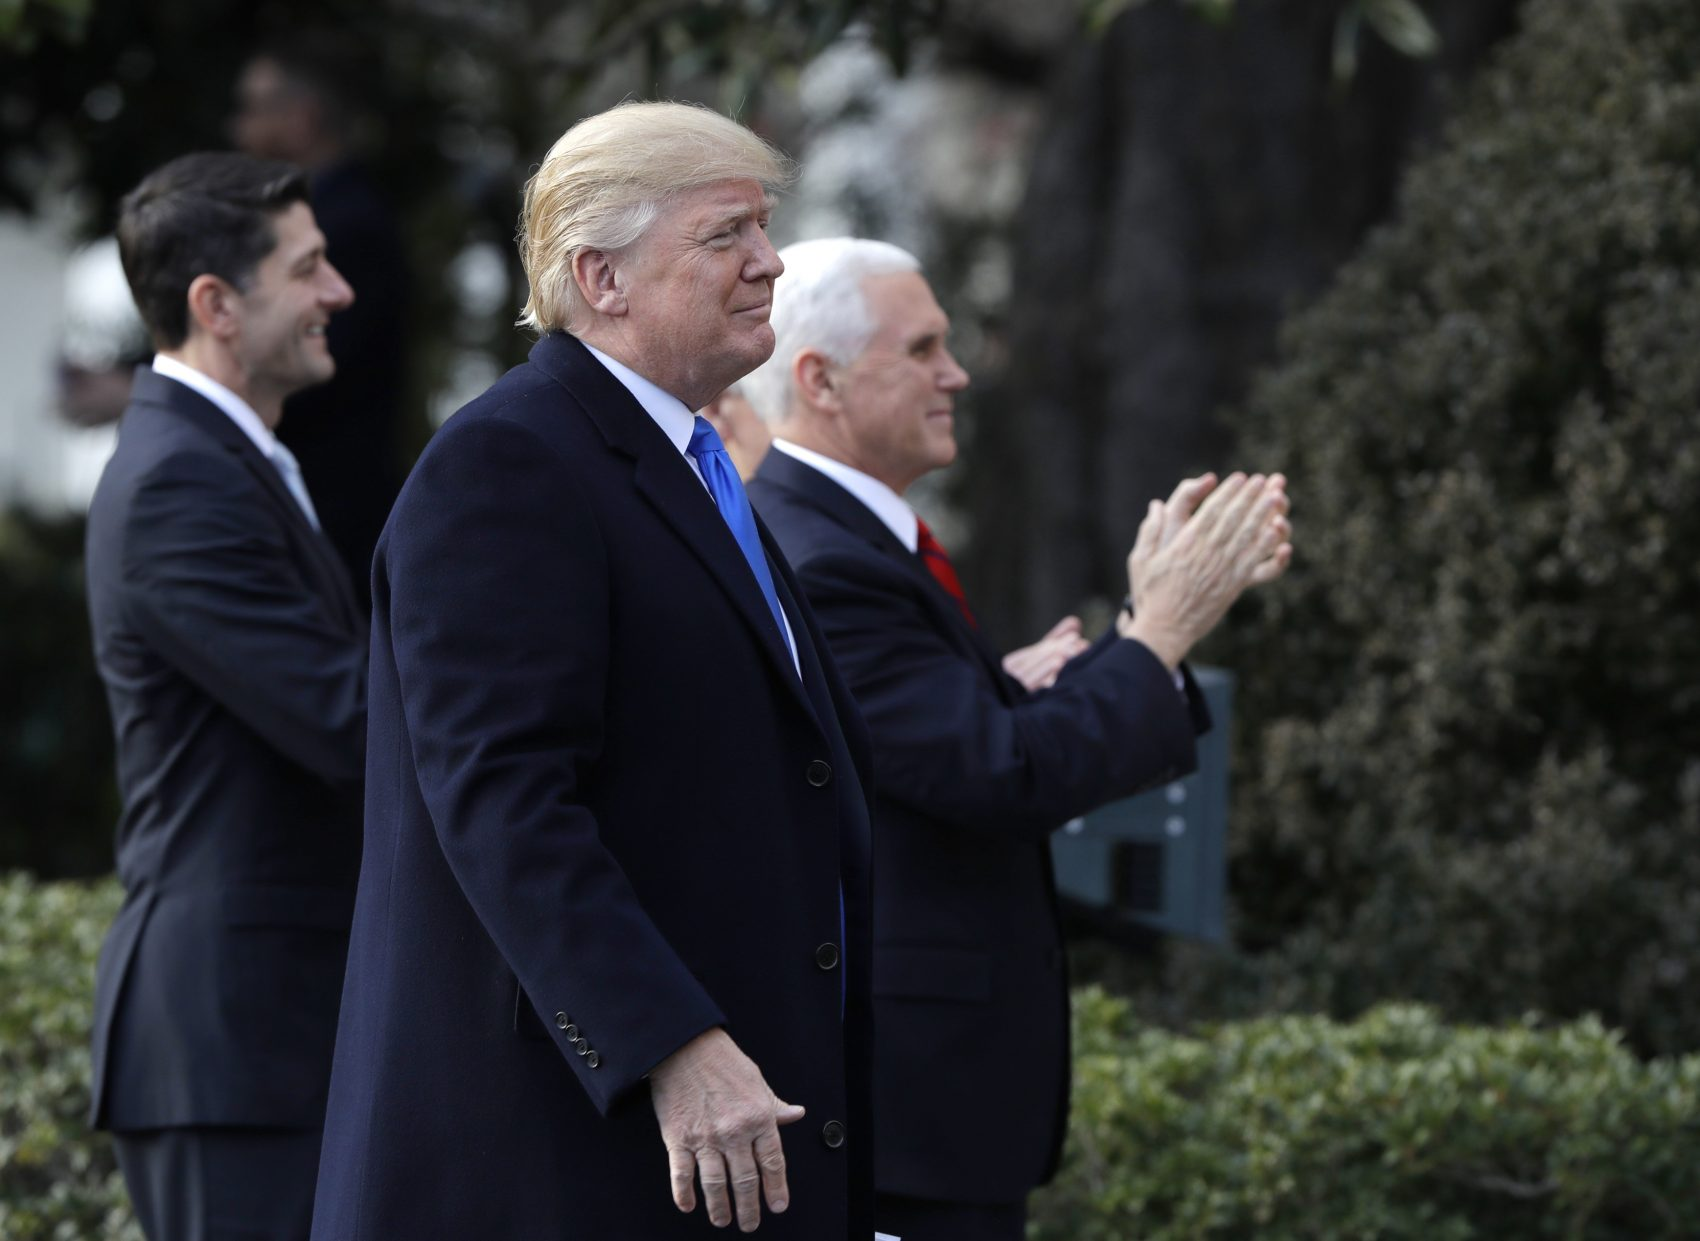 President Donald Trump walks with Vice President Mike Pence and House Speaker Paul Ryan, R-Wis., for a event after final passage of the tax overhaul plan, on the South Lawn of the White House, Wednesday, Dec. 20, 2017, in Washington. (AP Photo/Evan Vucci)